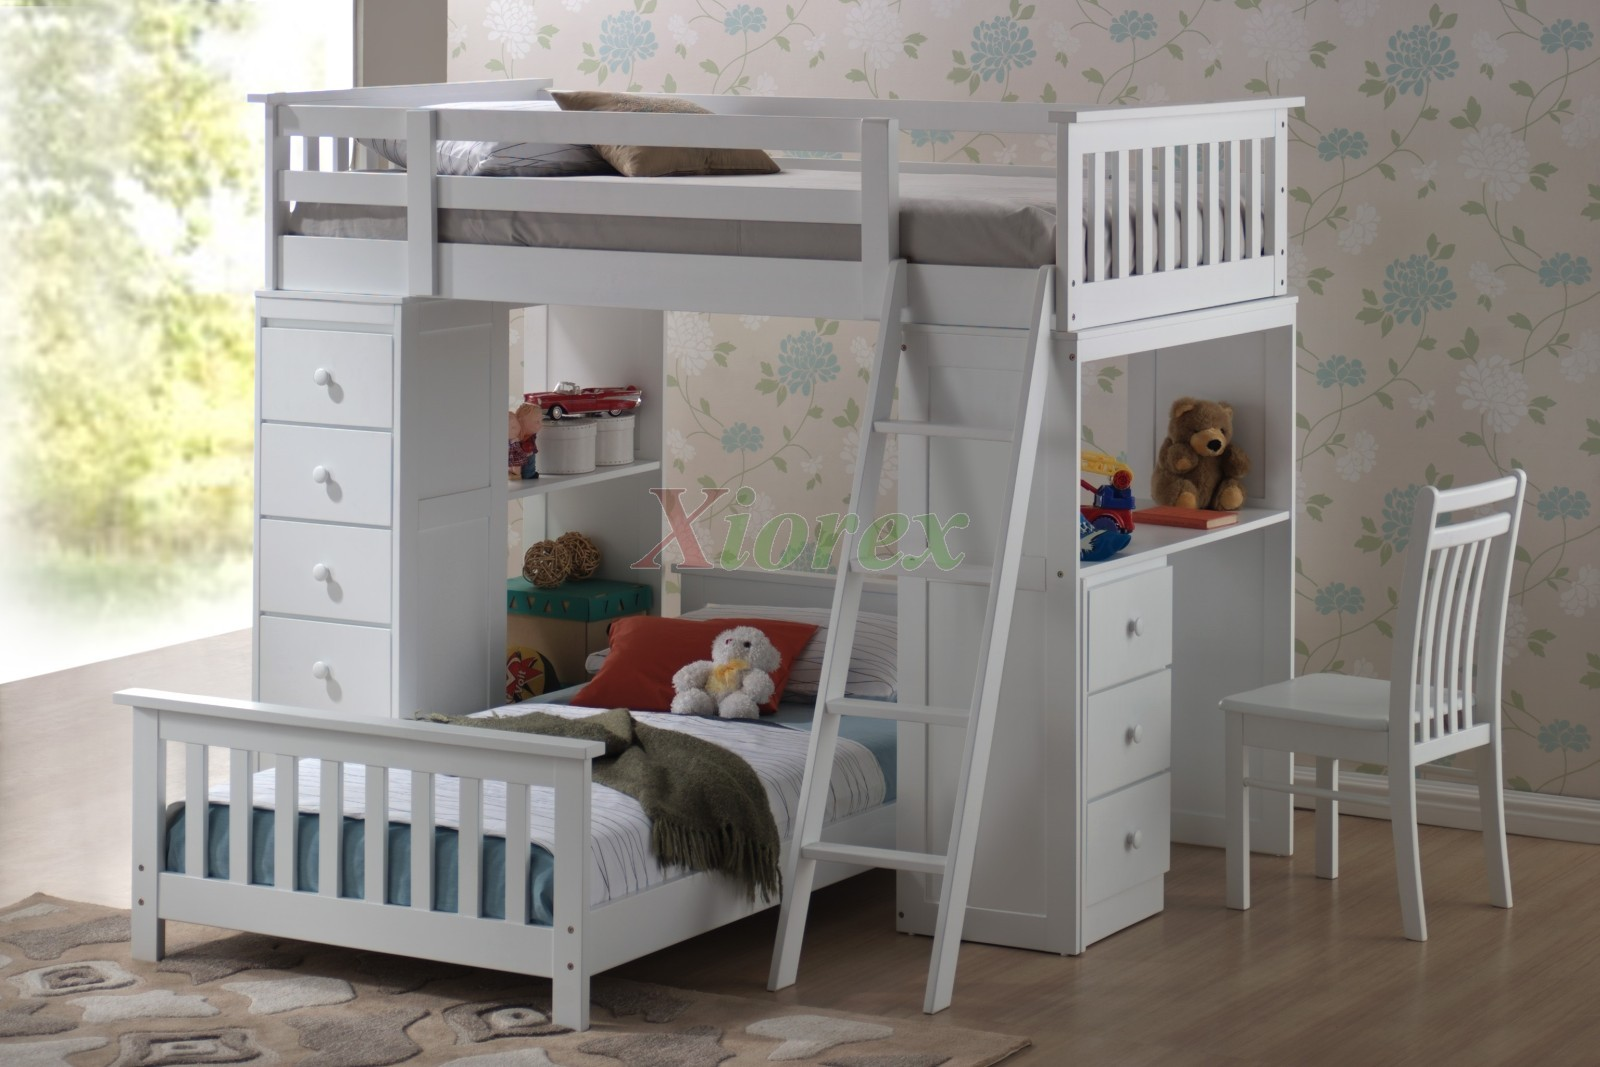 Huckleberry Loft Bunk Beds For Kids With Storage Desk